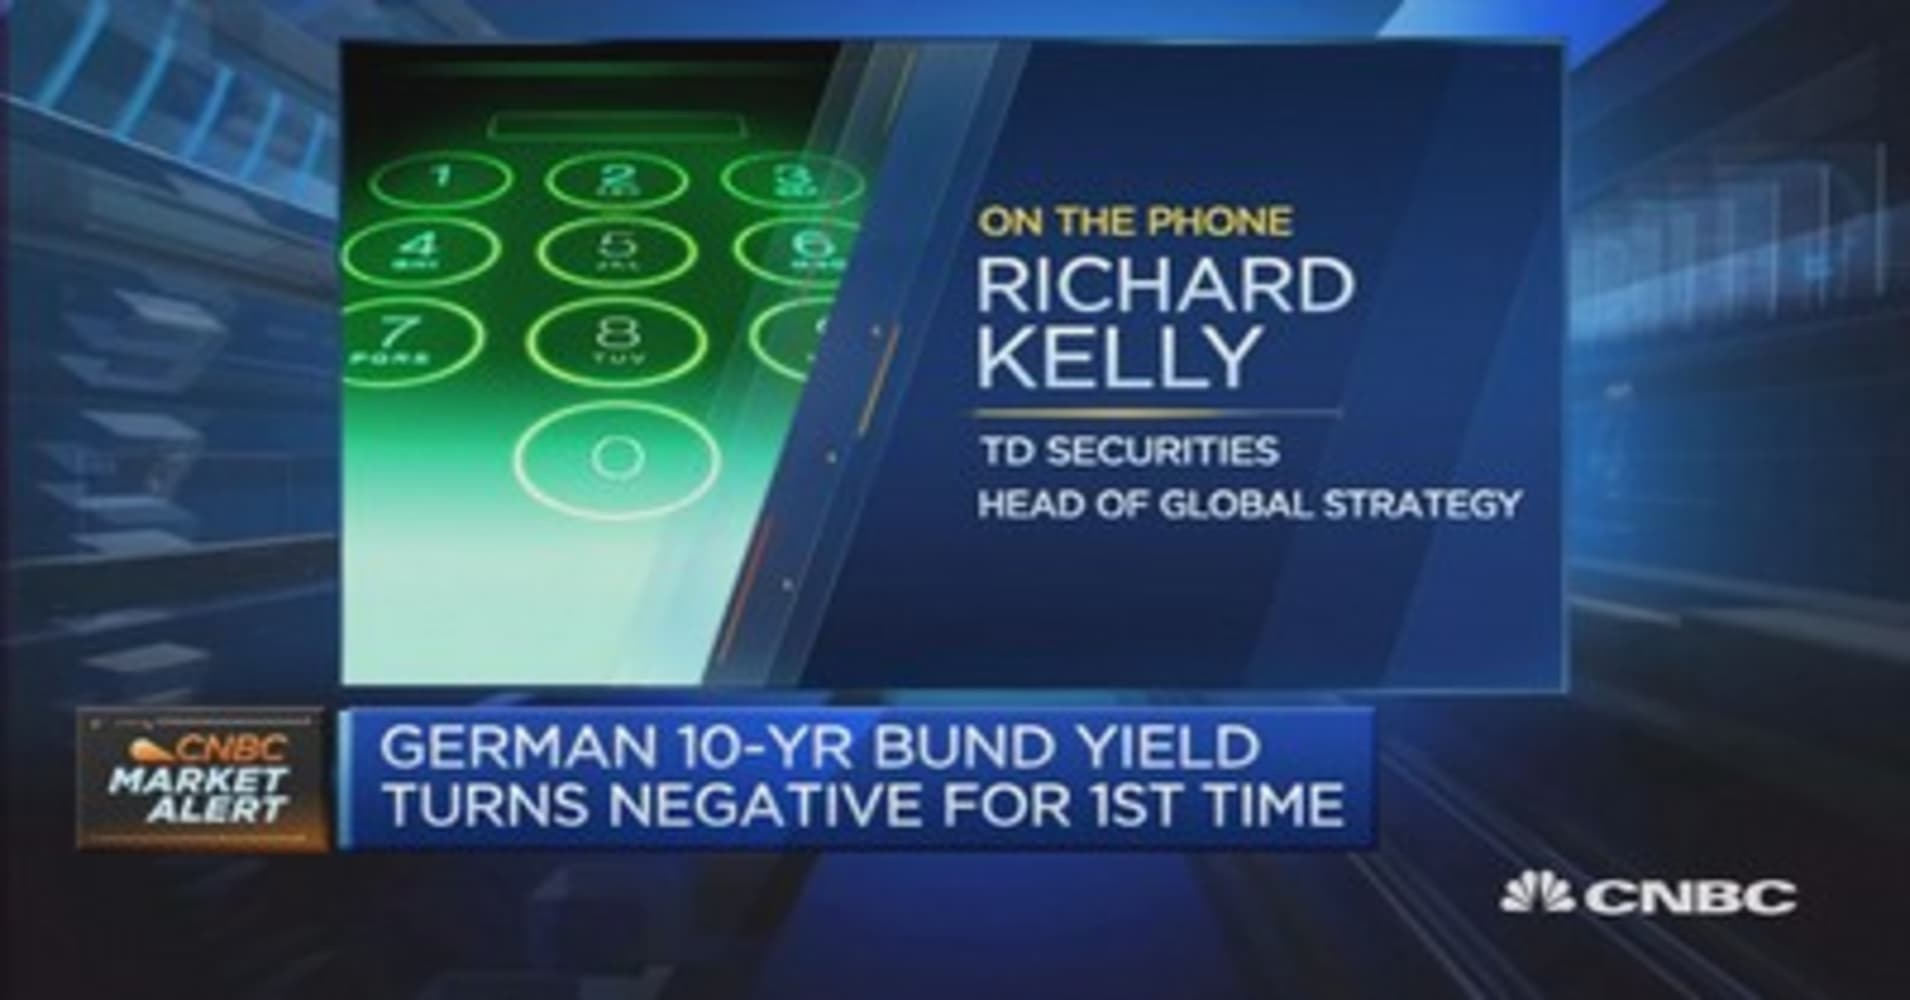 German 10-year sovereign bond yields turn negative for first time